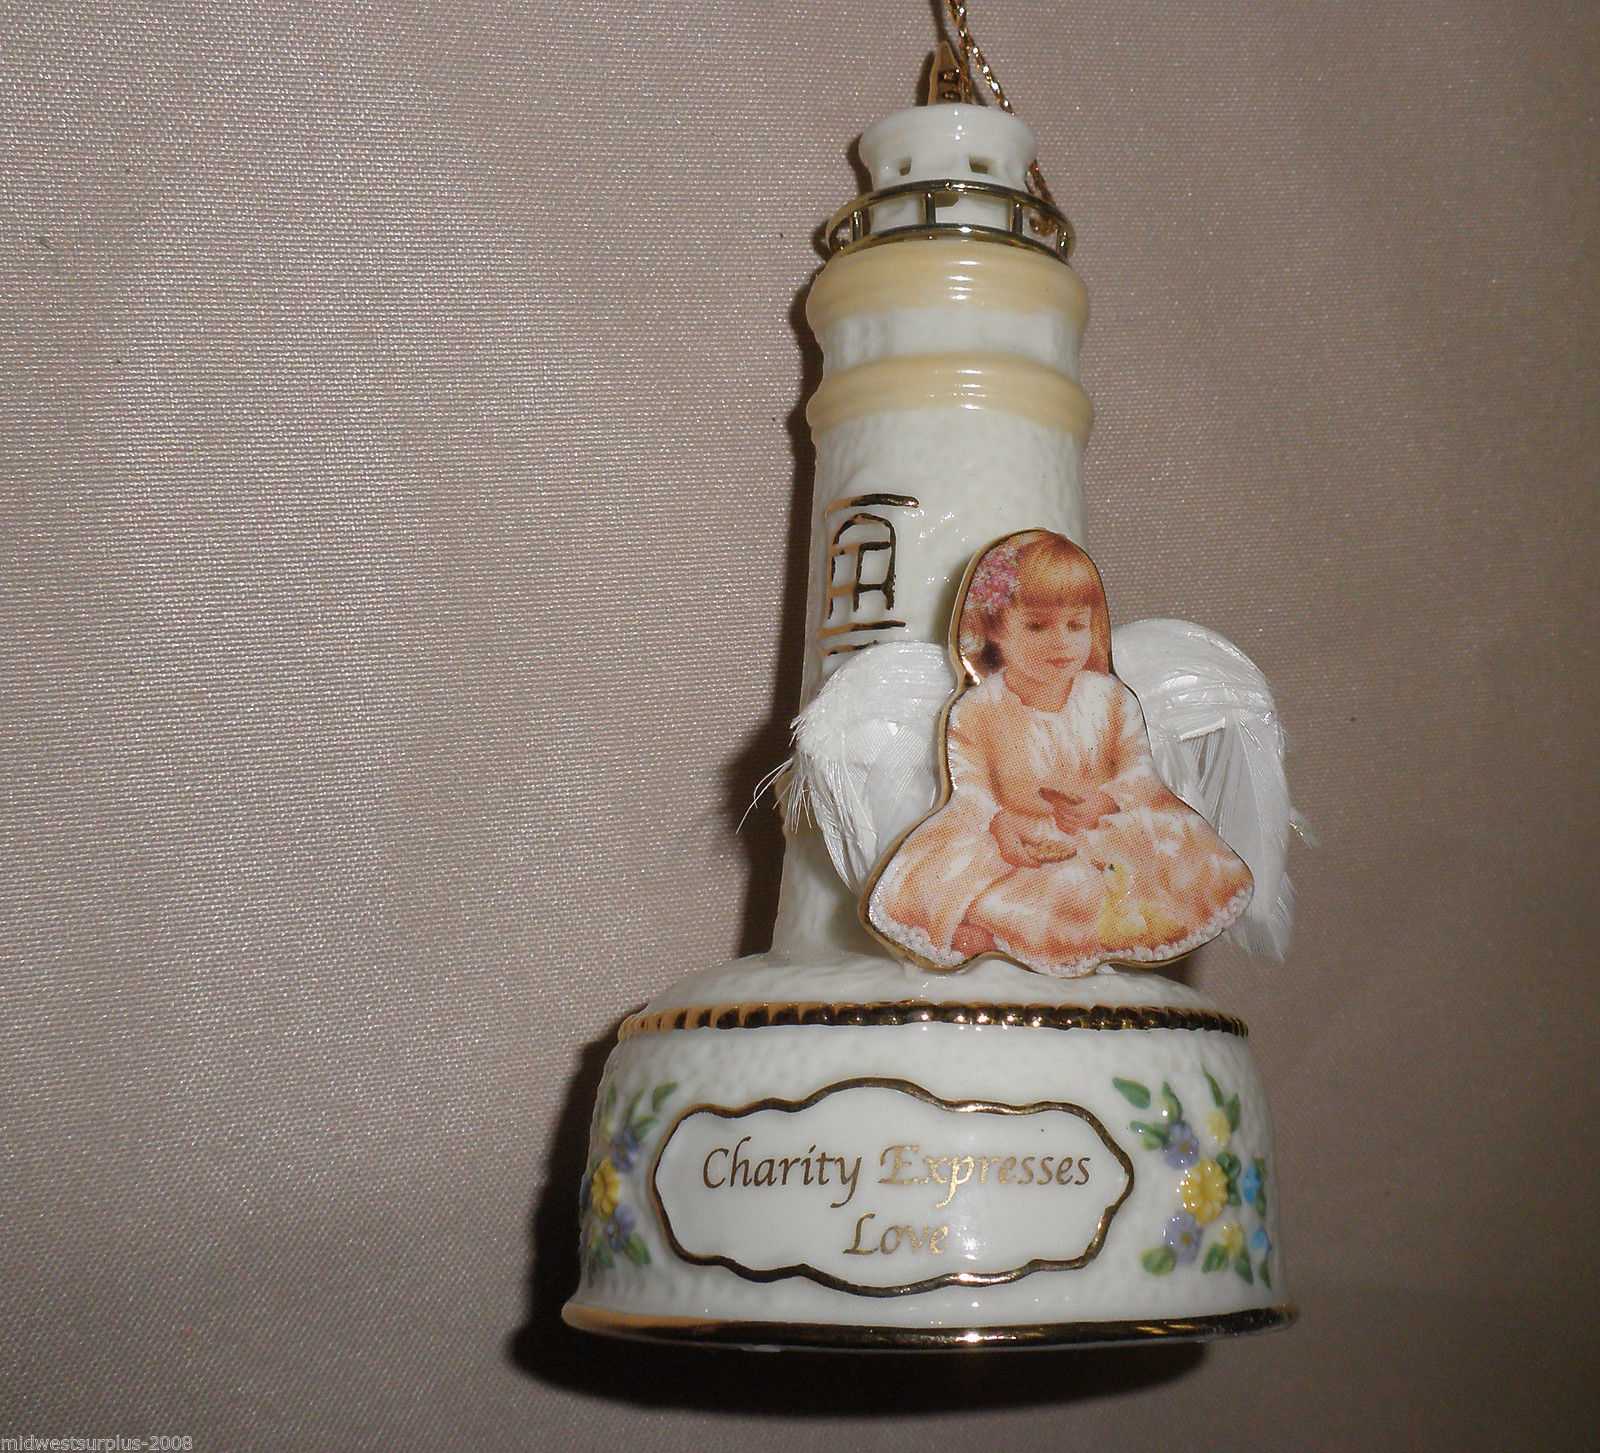 Bradford Edition 3rd Issue Guiding Light Heirloom Porcelain Ornaments (3) #39073